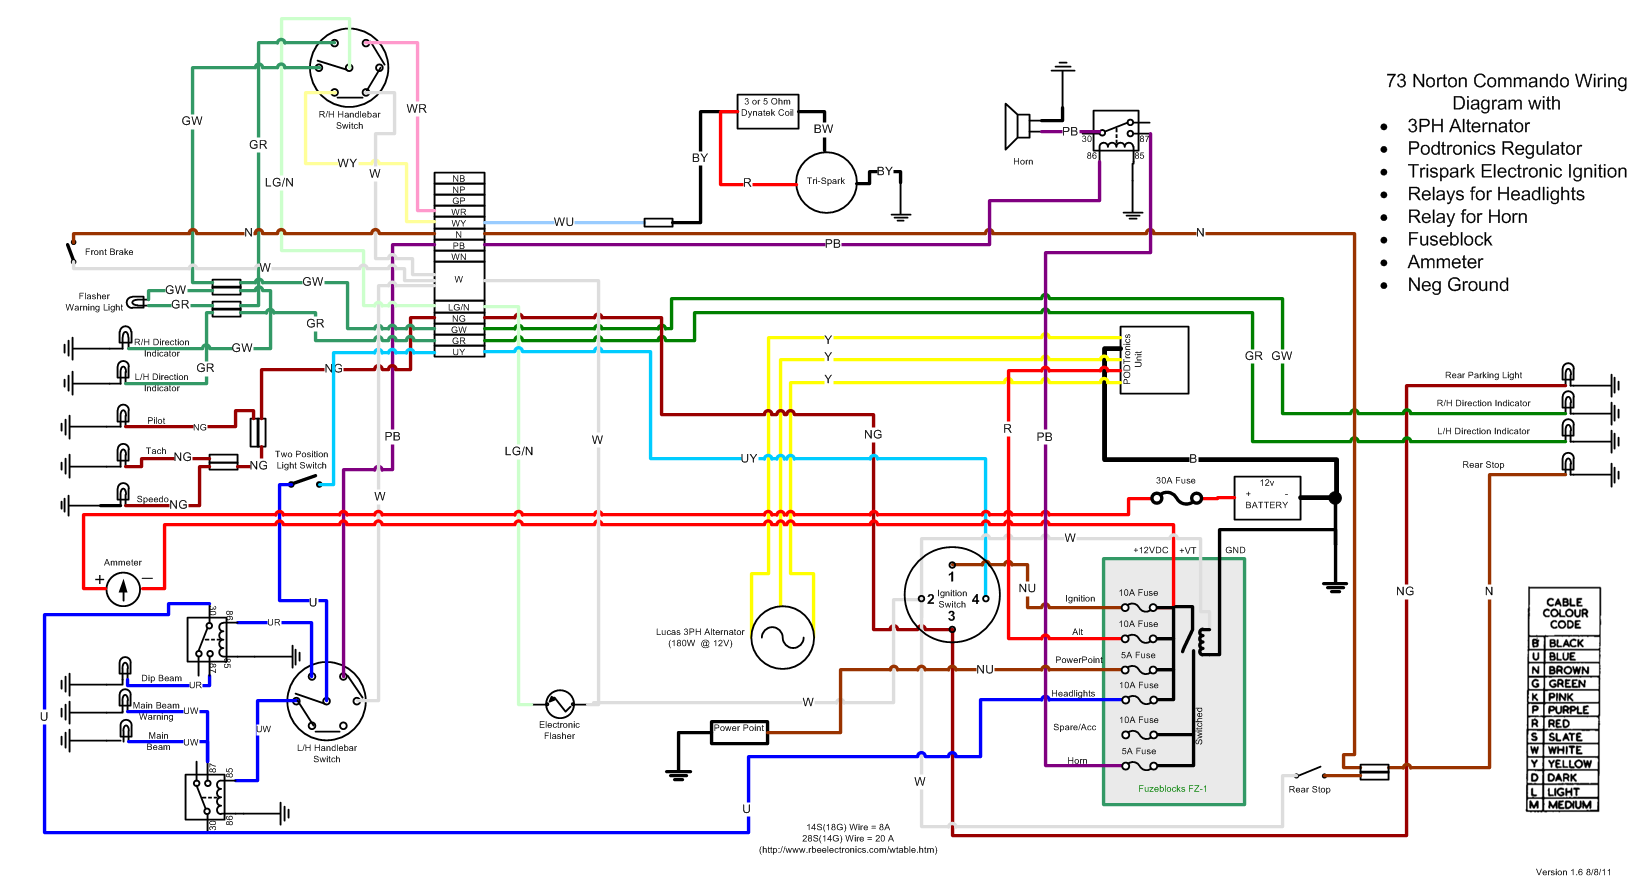 73wiringdiagram norton commando workshop companion workshop wiring diagram at gsmx.co